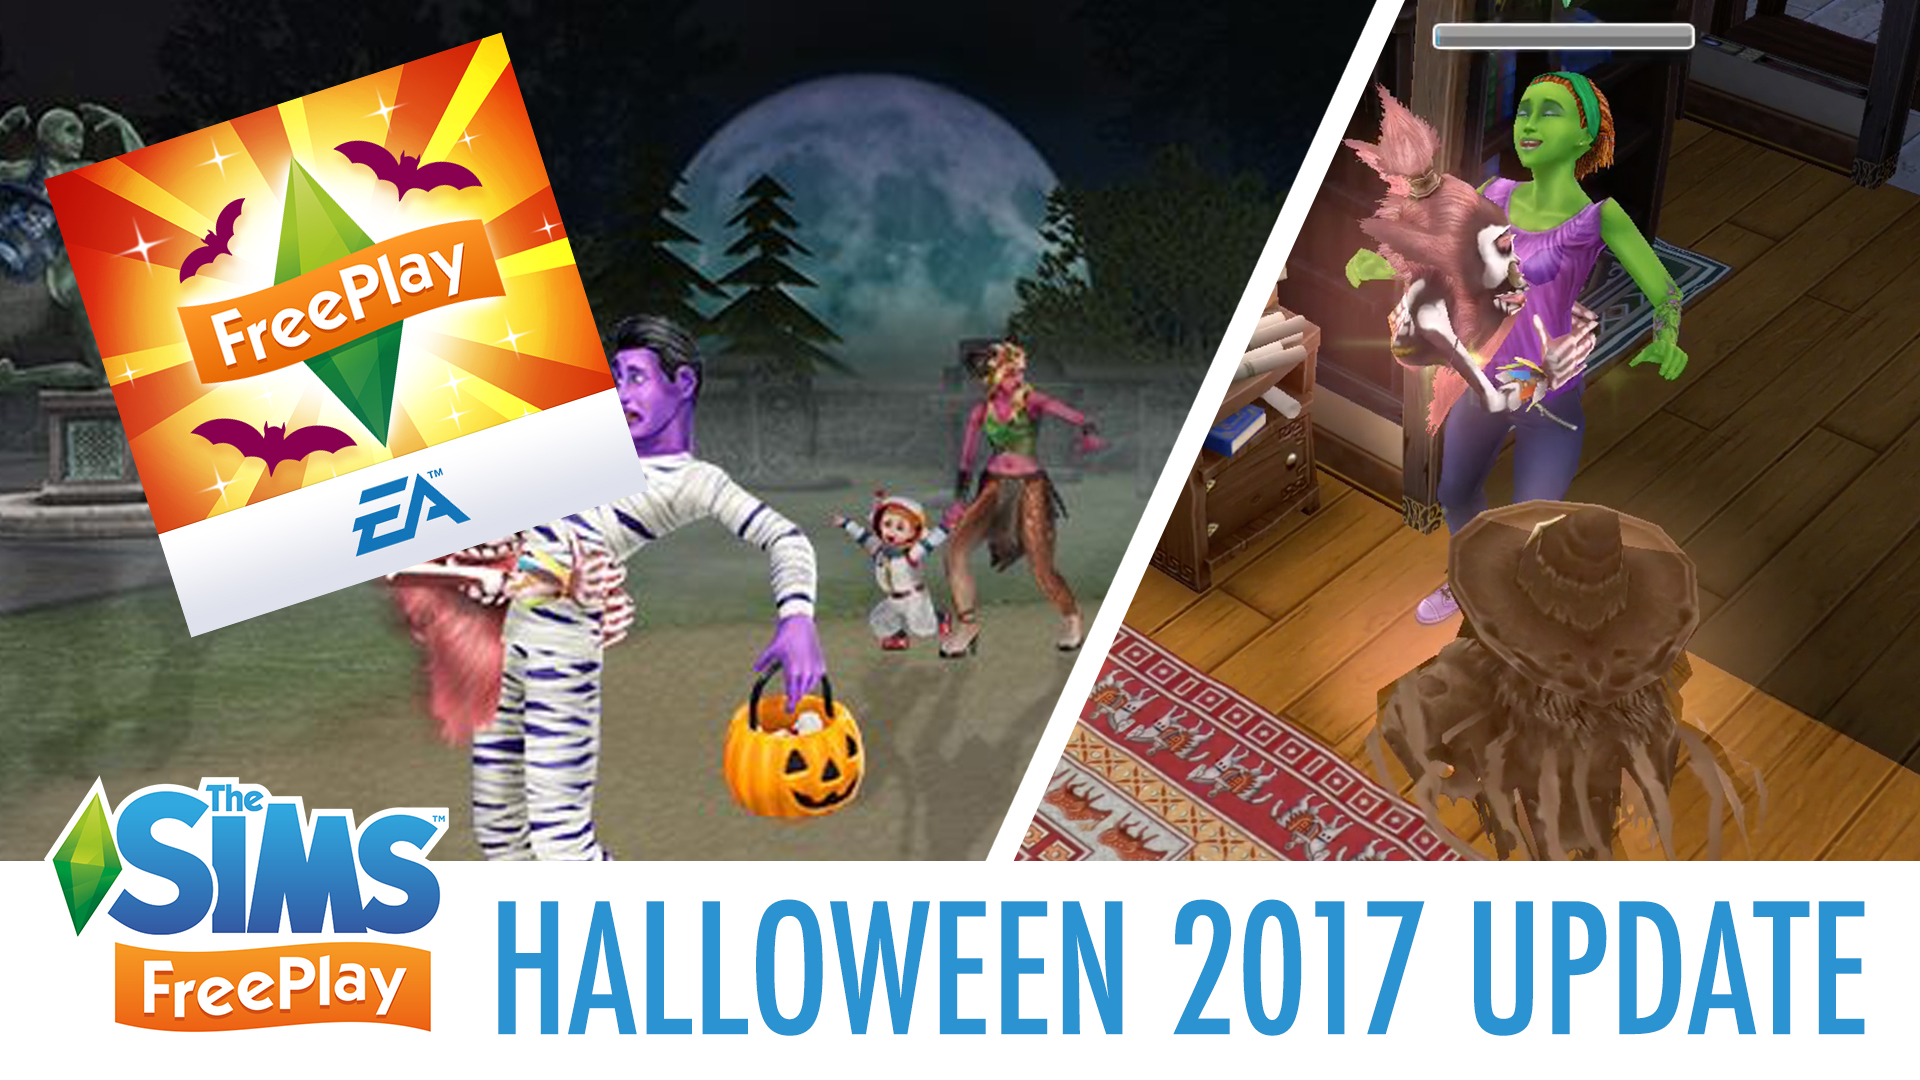 Halloween 2020 Sims Ghost Flustered Quest Walkthrough   Sims FreePlay Halloween Update